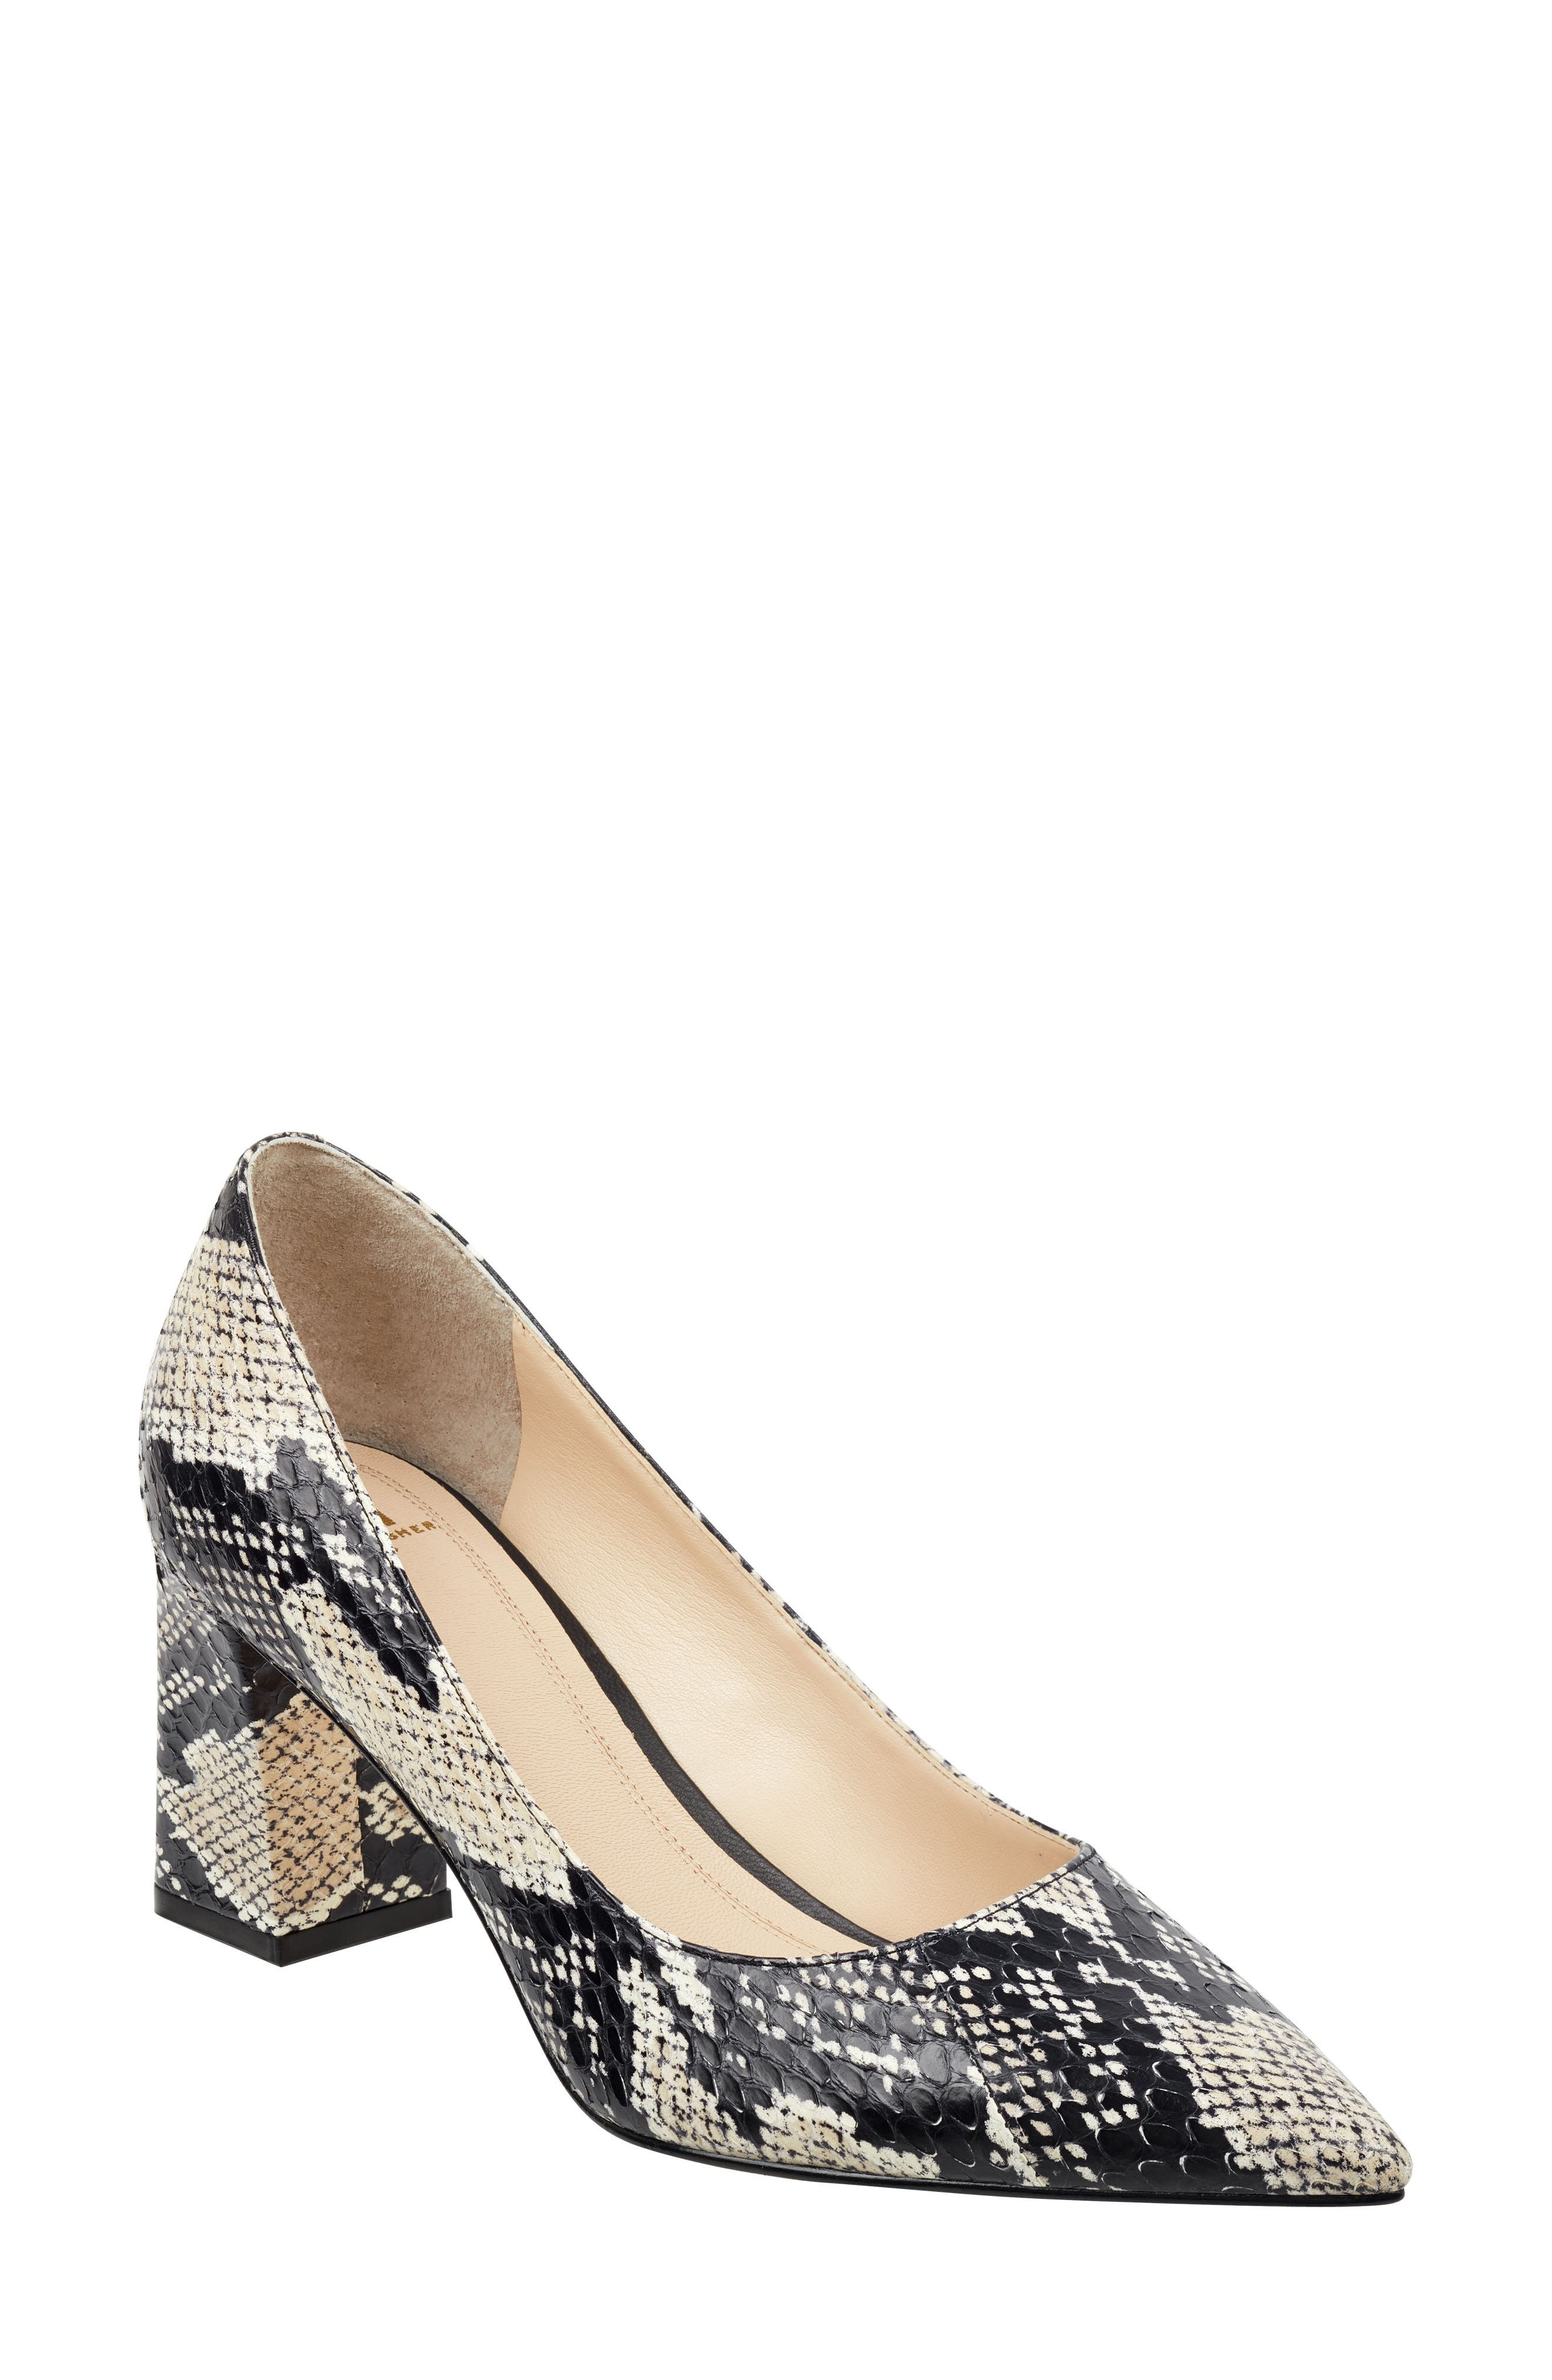 'Zala' Pump,                         Main,                         color, BEIGE/ BLACK SNAKE PRINT